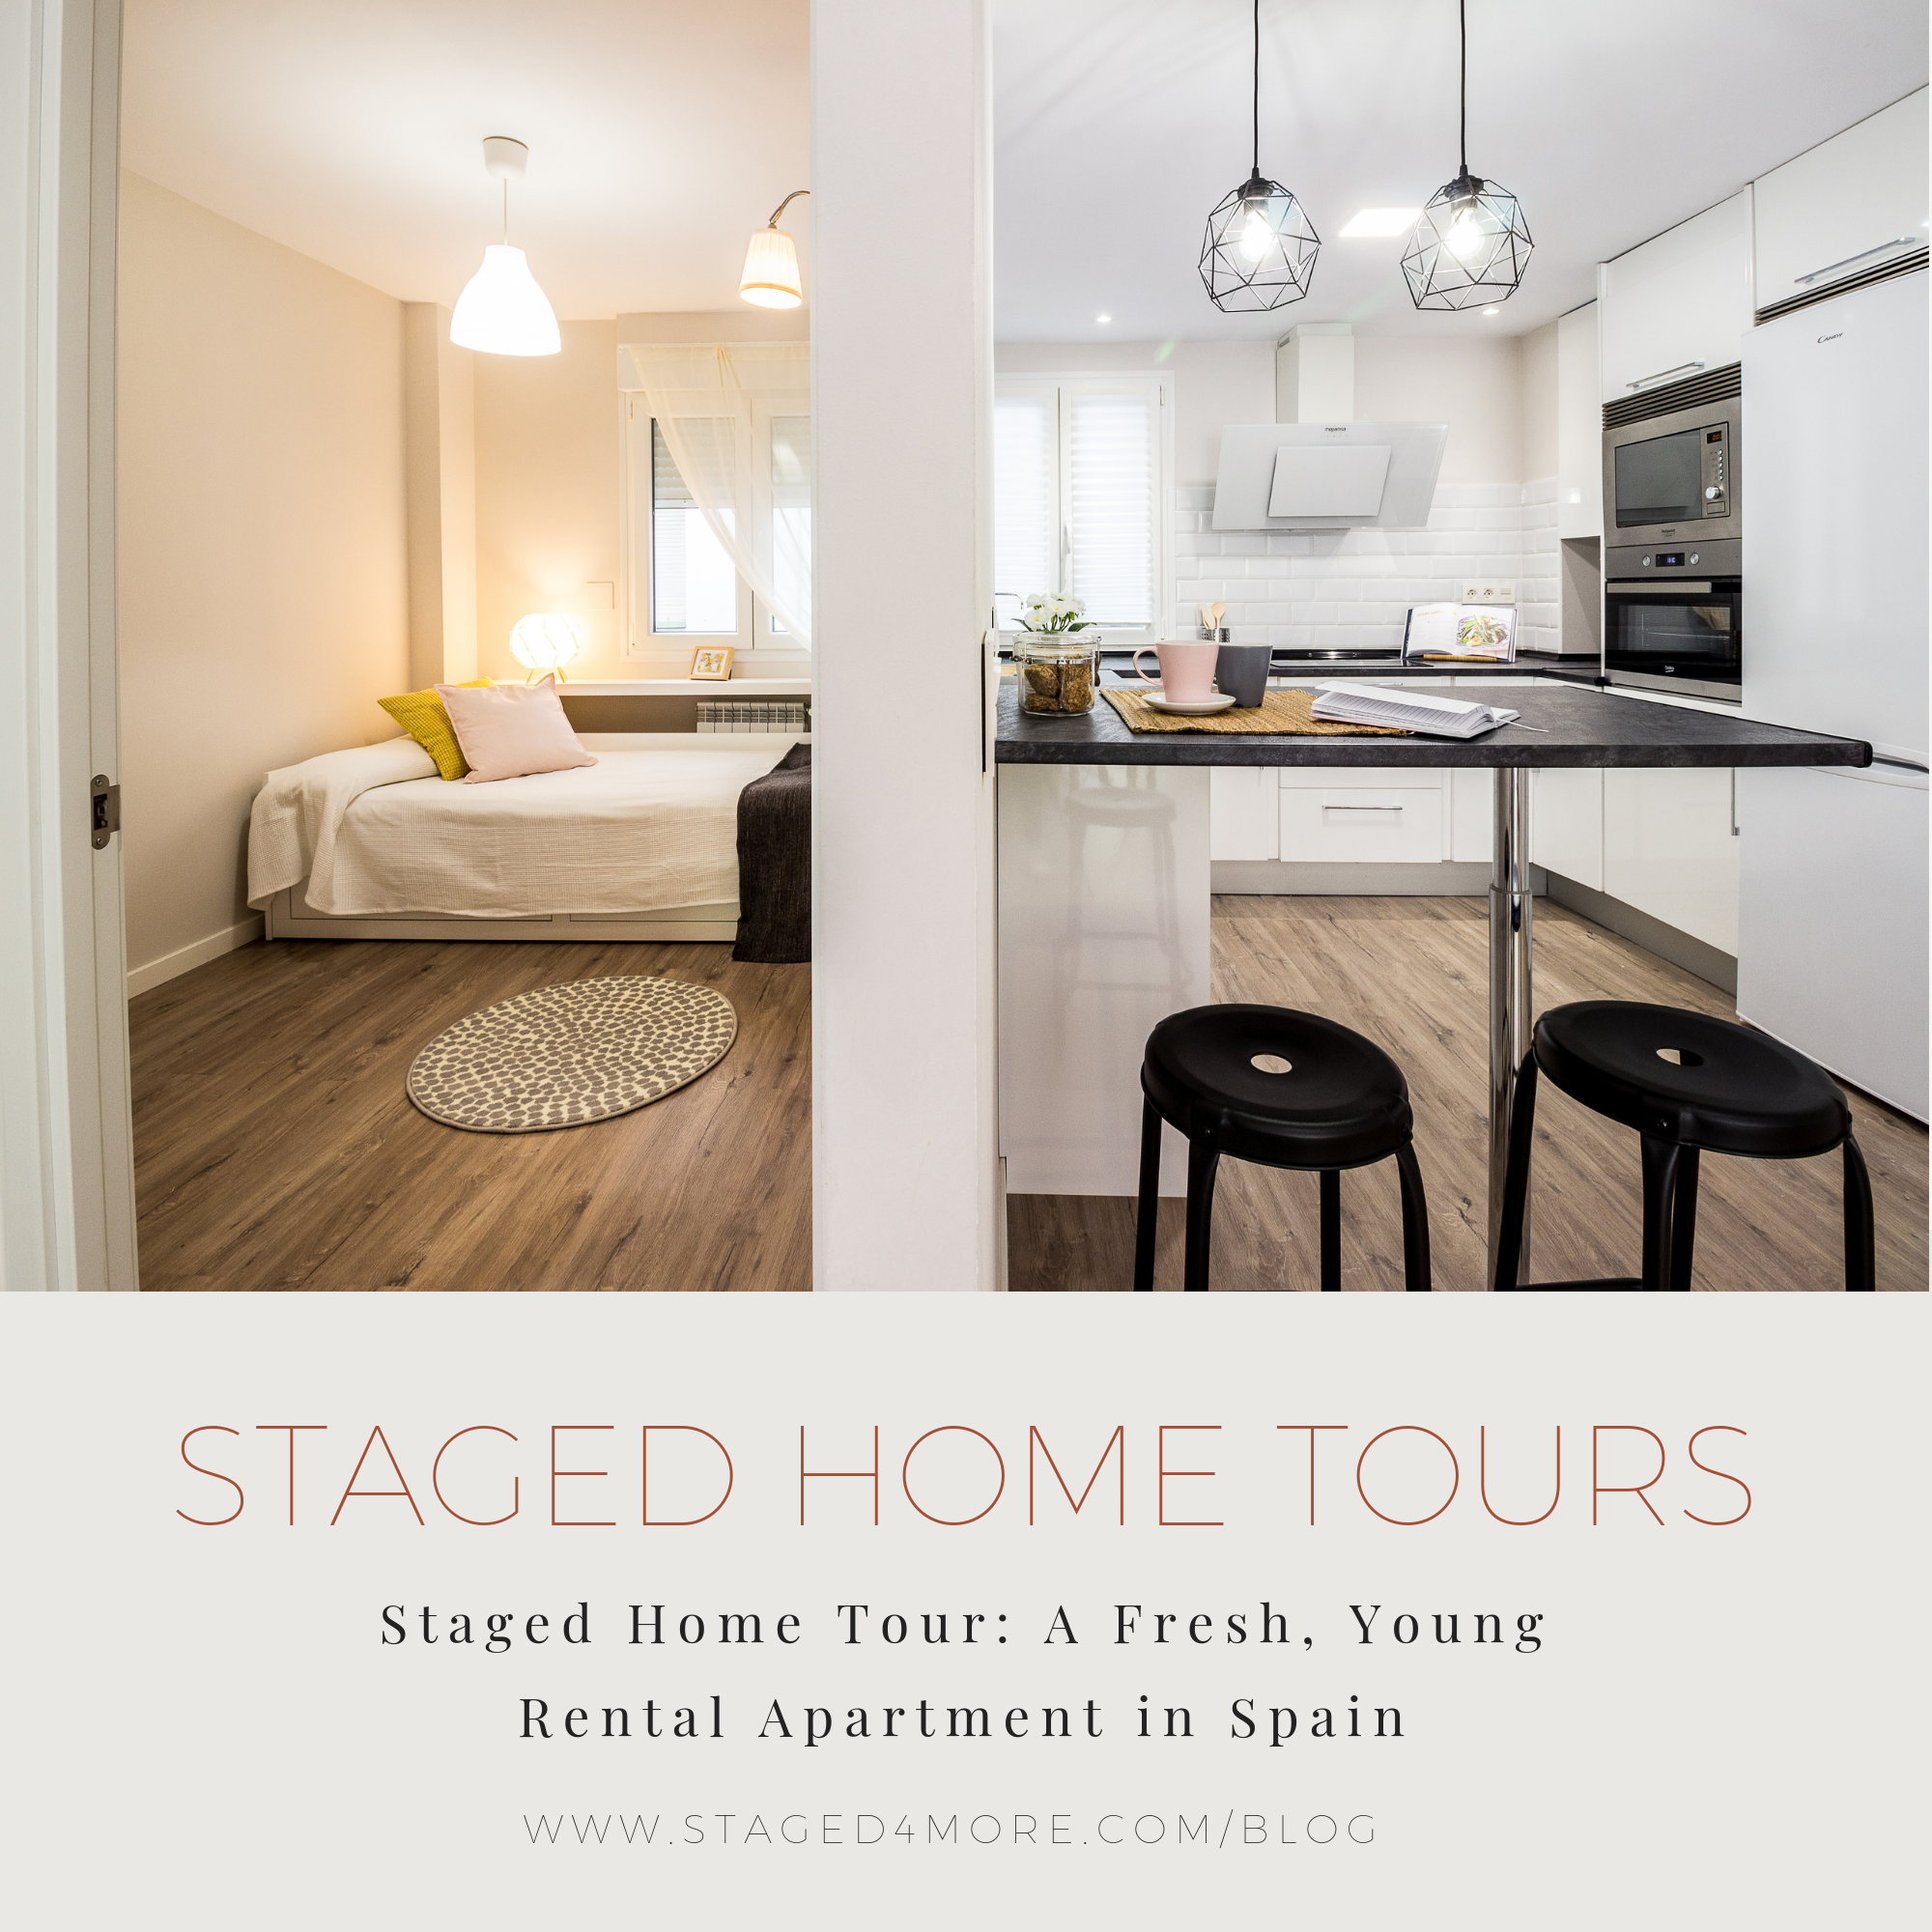 Staged4more Staged Home Tour A Young and Fresh Rental Apartment in Spain